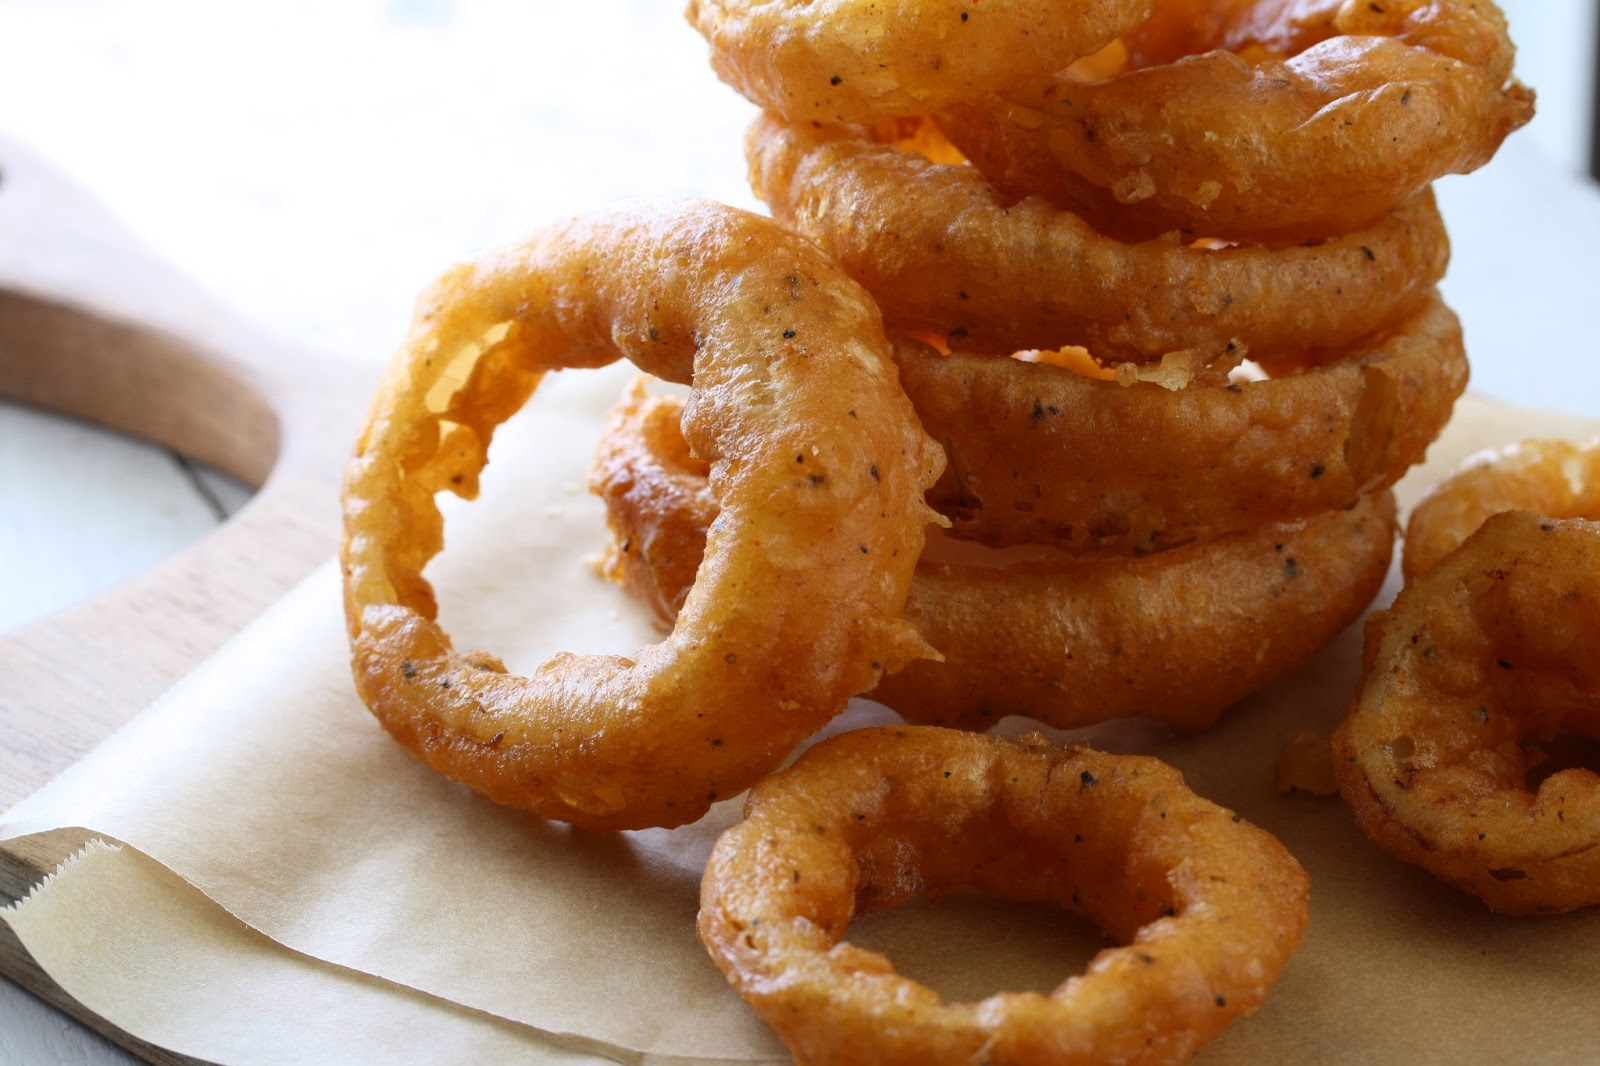 Onion Rings with Spicy Dipping Sauce - Saving Room for Dessert